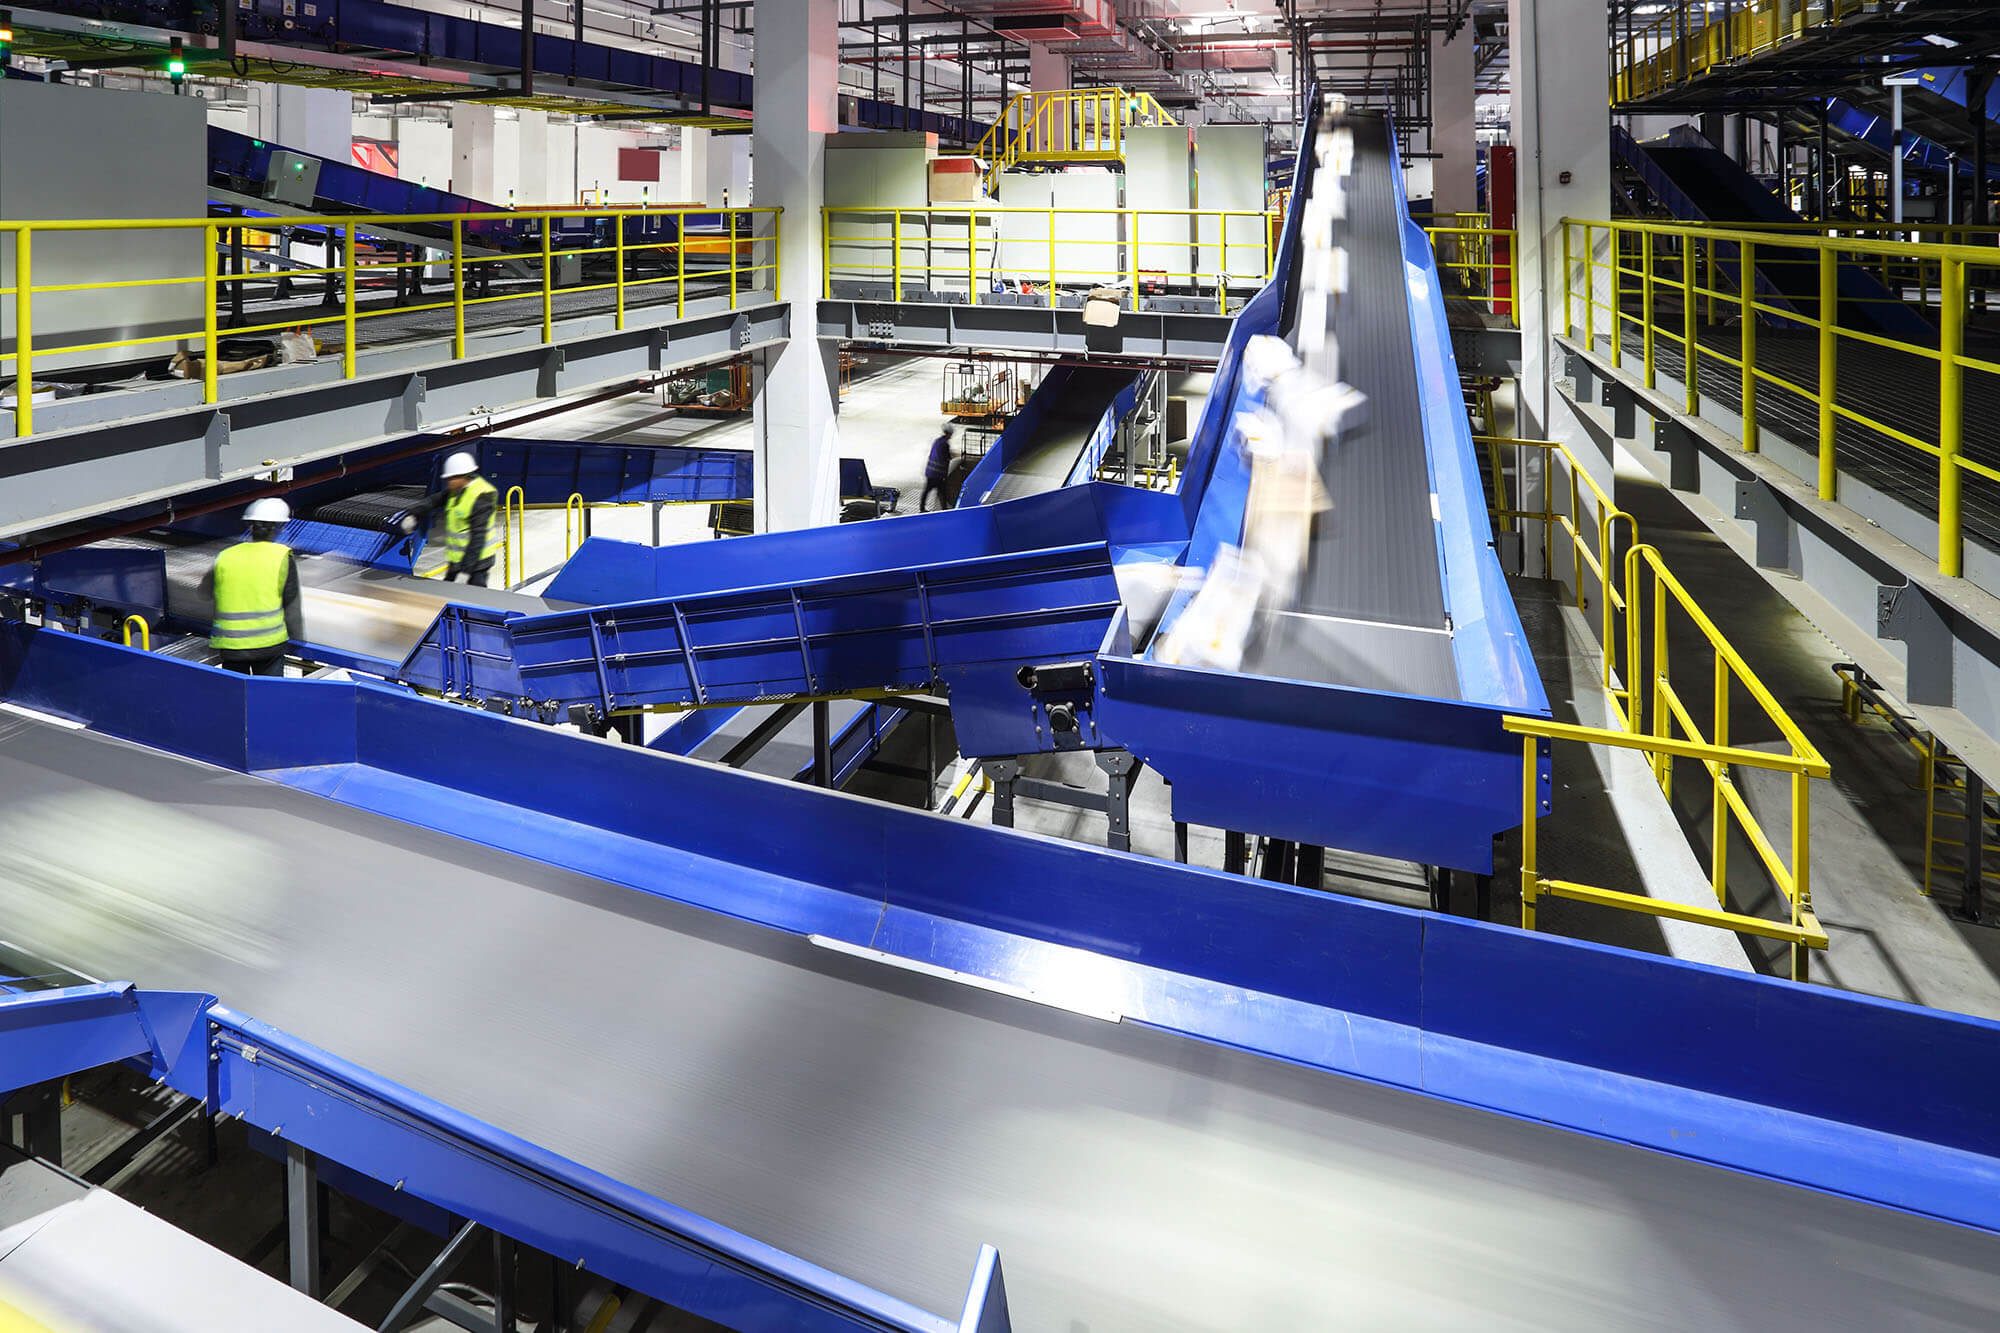 Conveyor system and sorting in warehouse automation